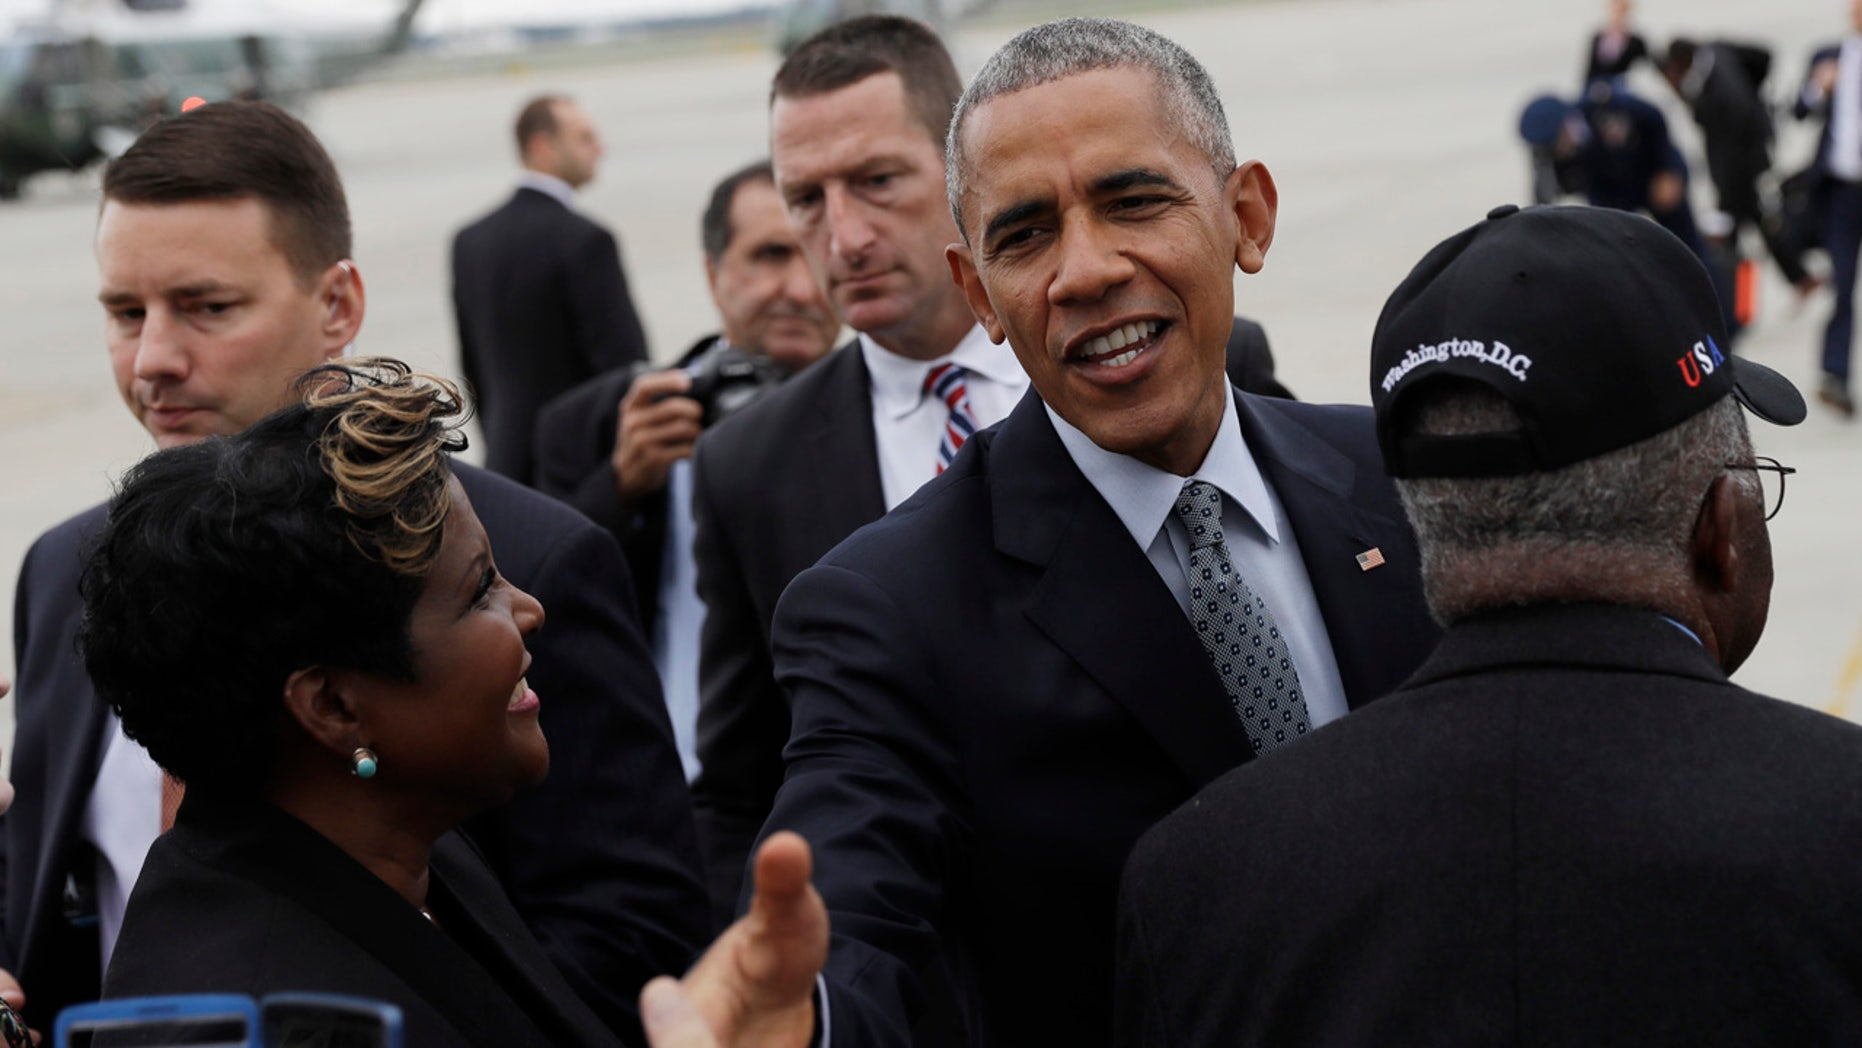 Sept. 28, 2016: President Barack Obama greets people on the tarmac as he arrives on Air Force One at Richmond International Airport, in Richmond, Va.